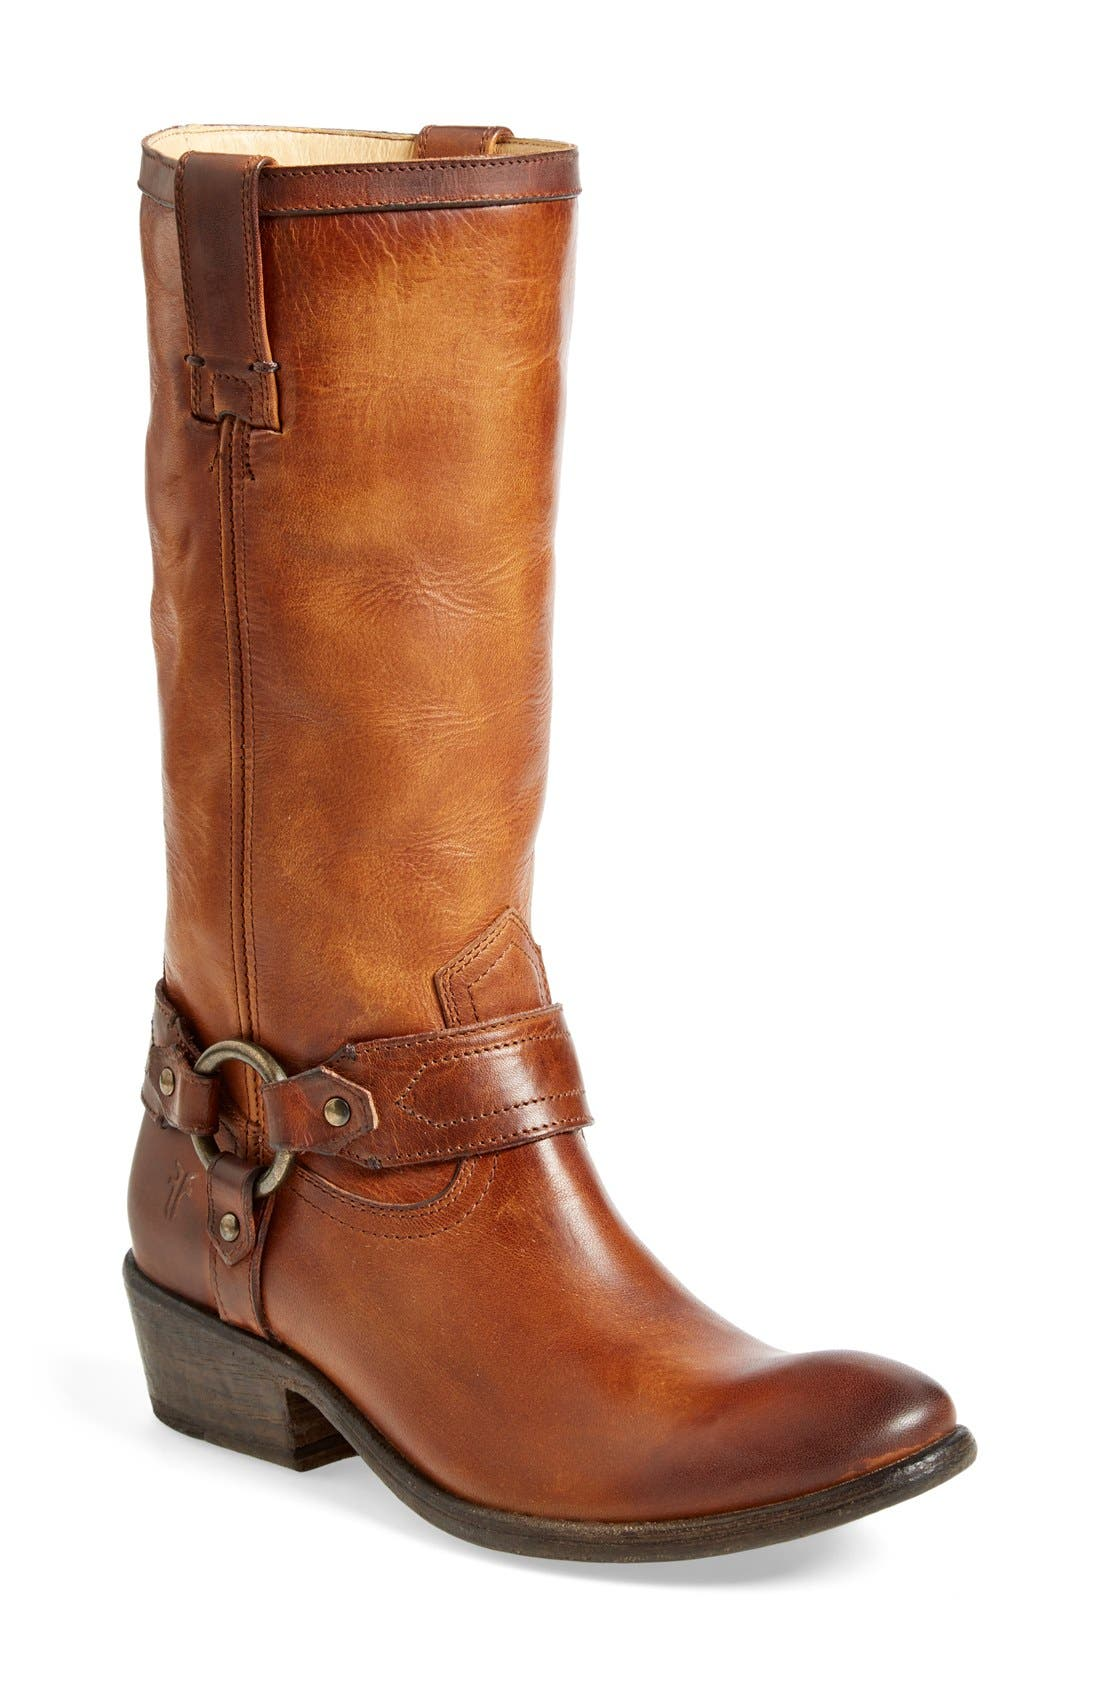 'Carson Harness' Western Mid Calf Riding Boot,                         Main,                         color, 200